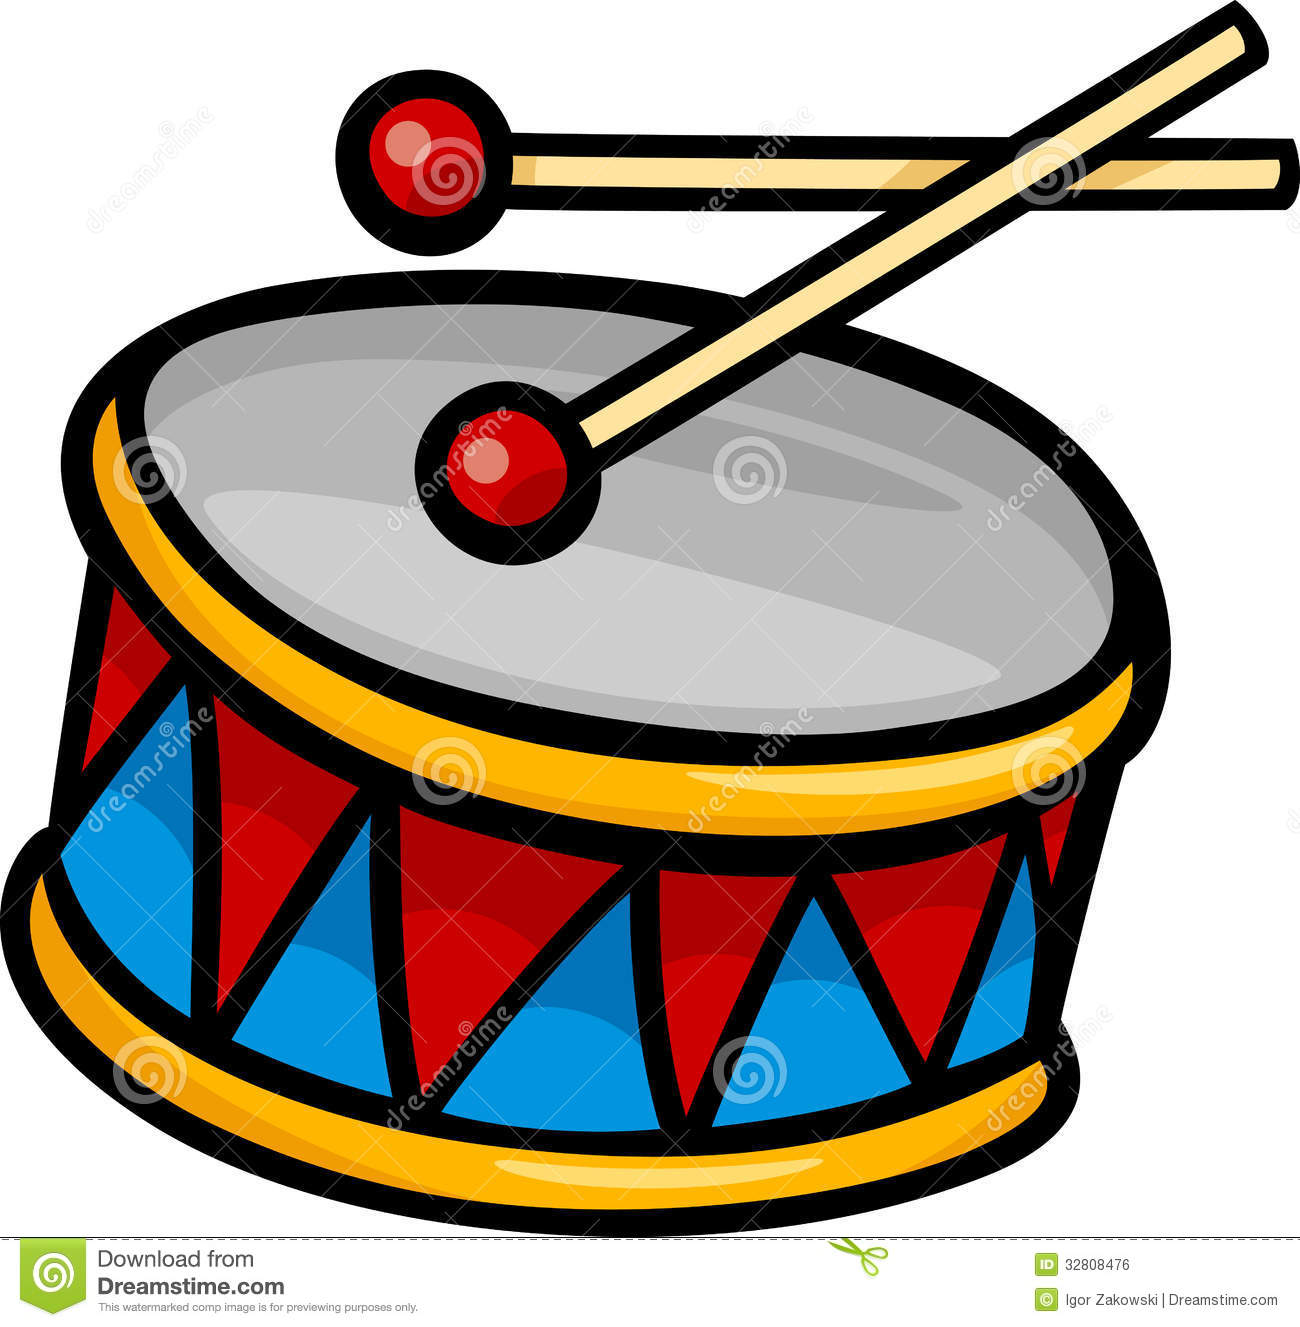 Clipart of a drum transparent download Drum Clip Art Free | Clipart Panda - Free Clipart Images transparent download